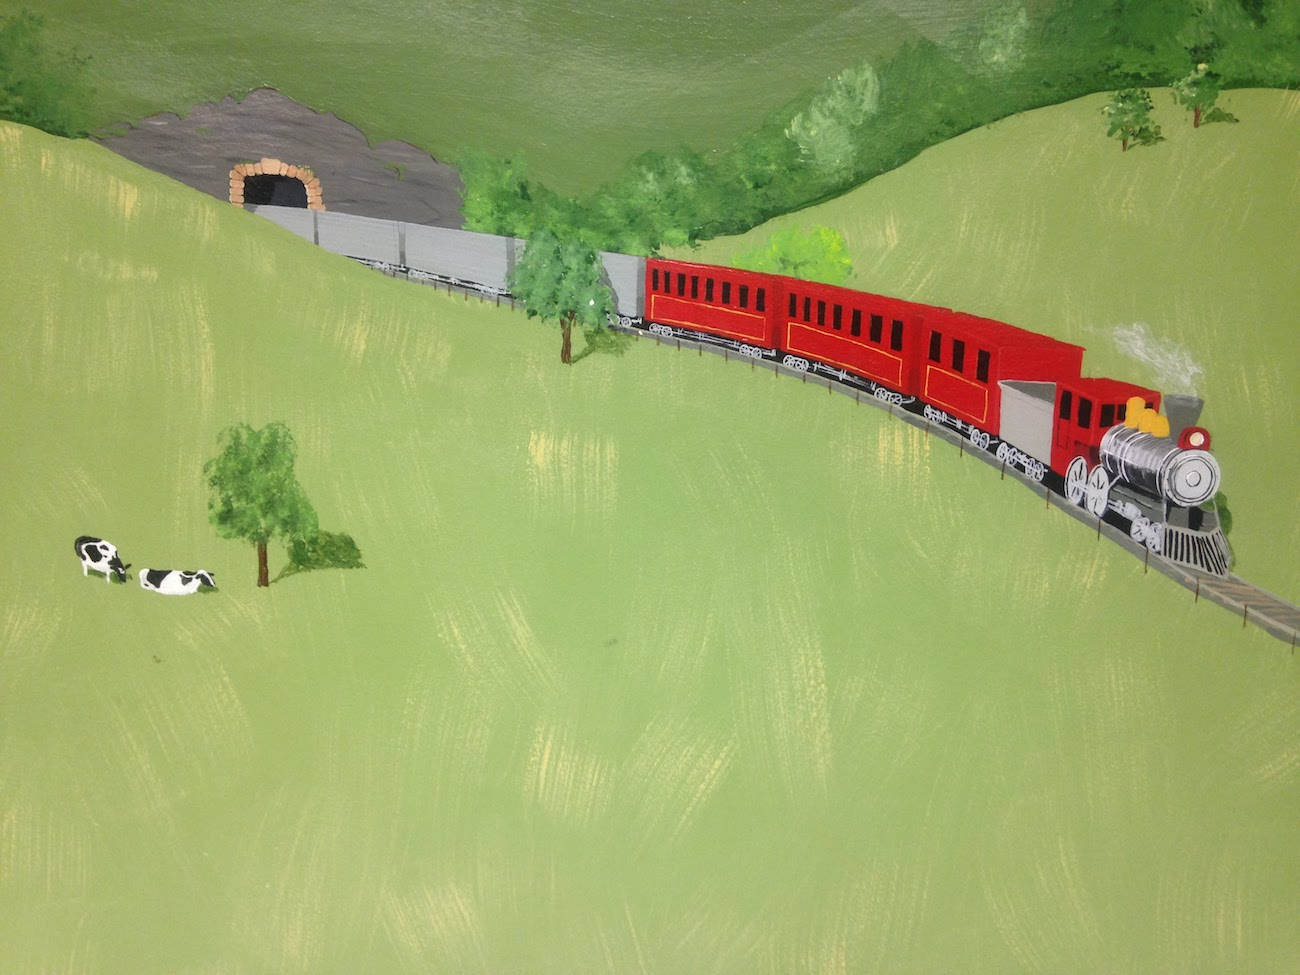 Mural of a red train coming out of a tunnel in a hillside in a field with cows.